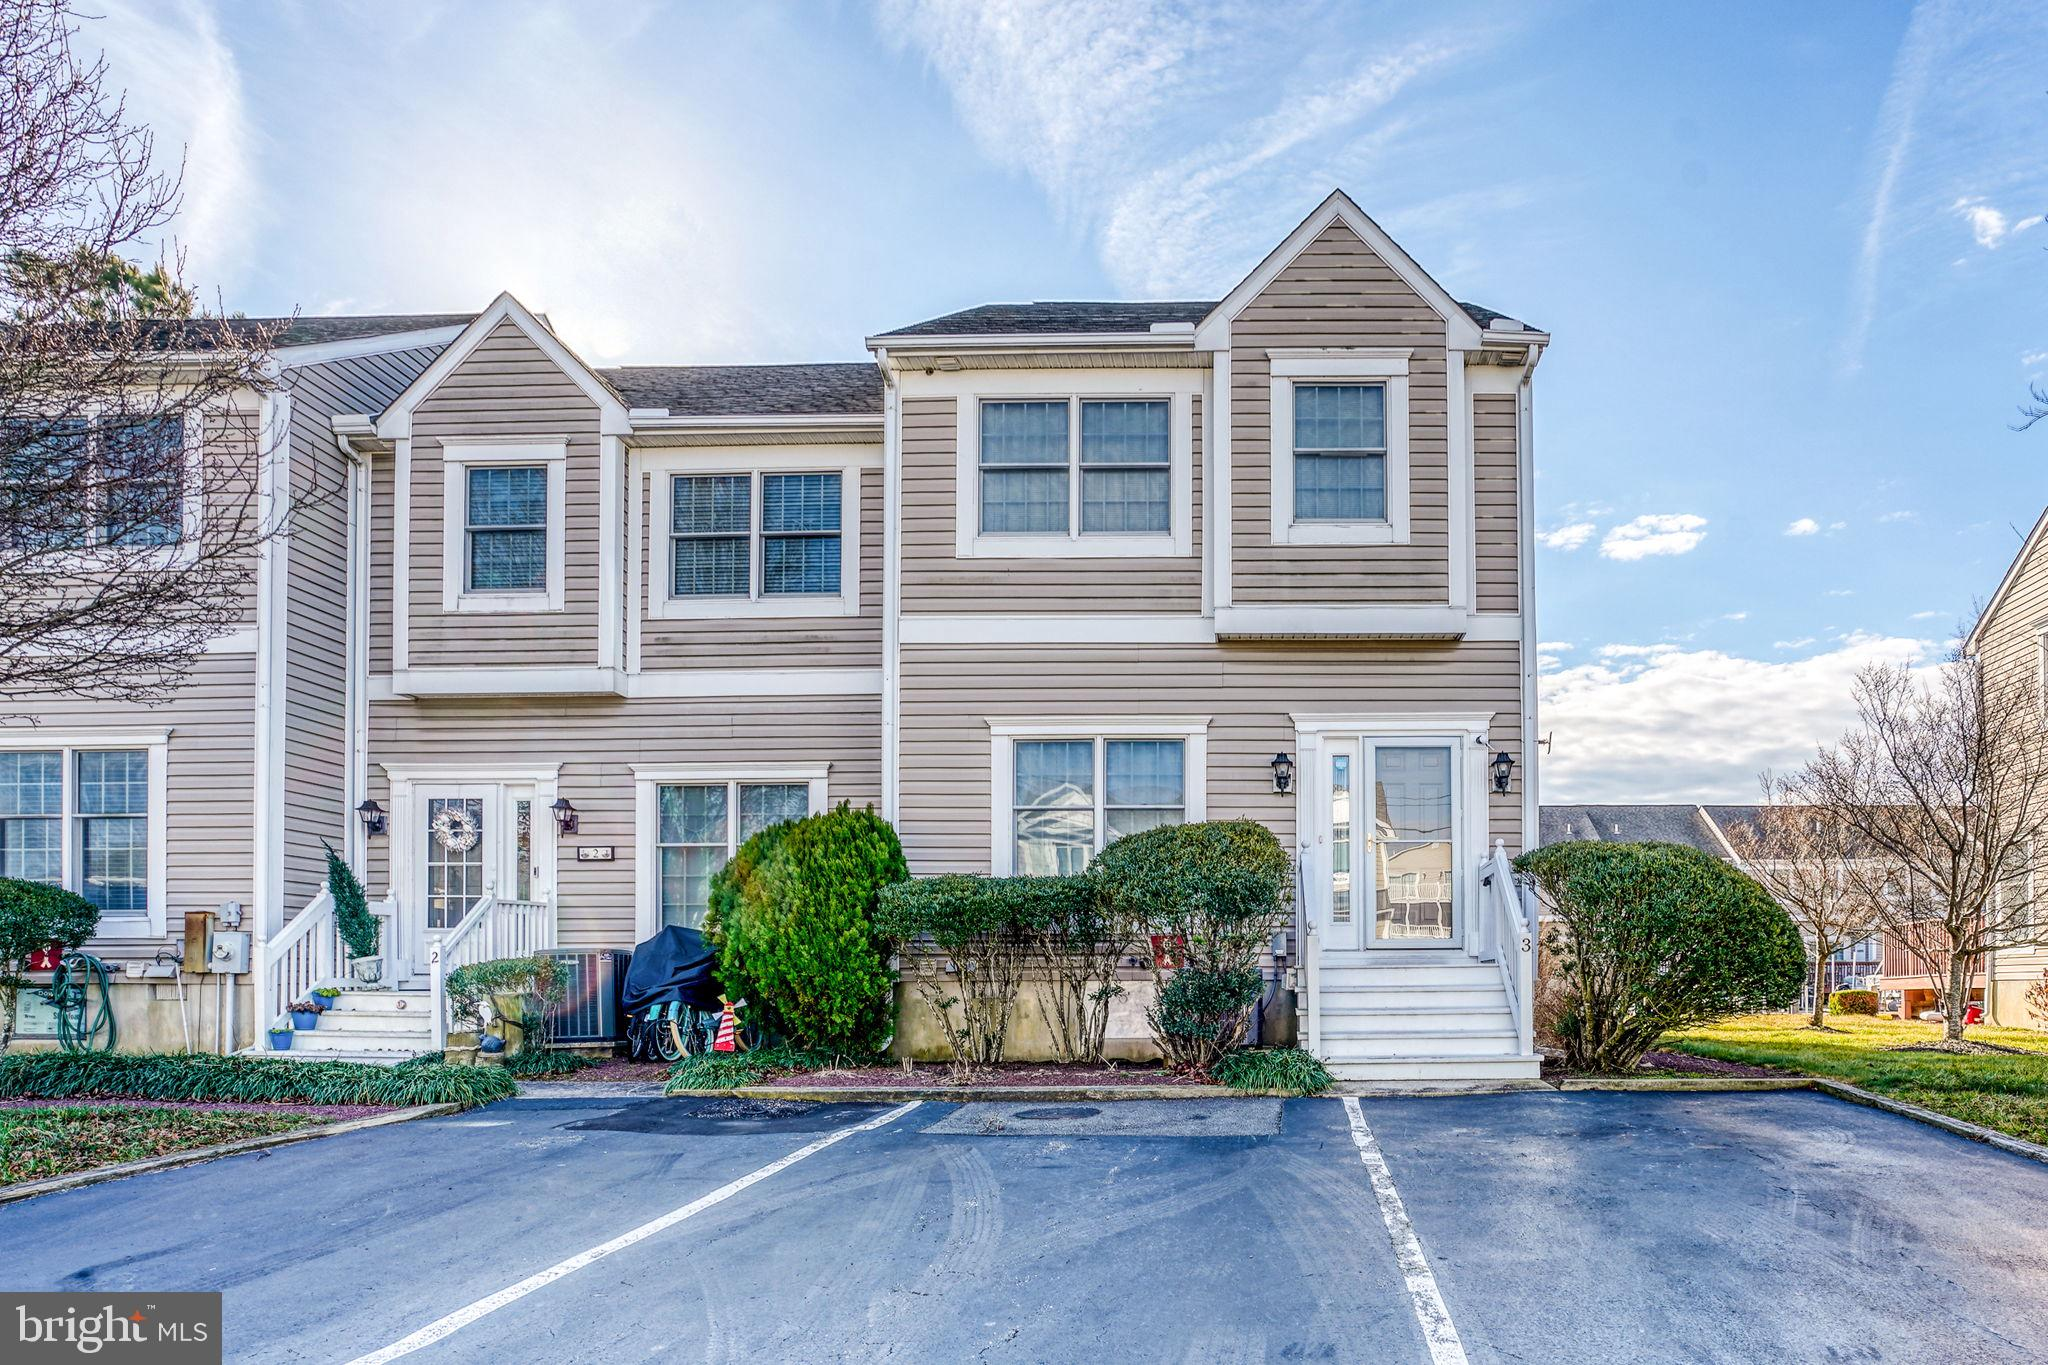 13031 Hayes Ave #301, Ocean City, MD, 21842